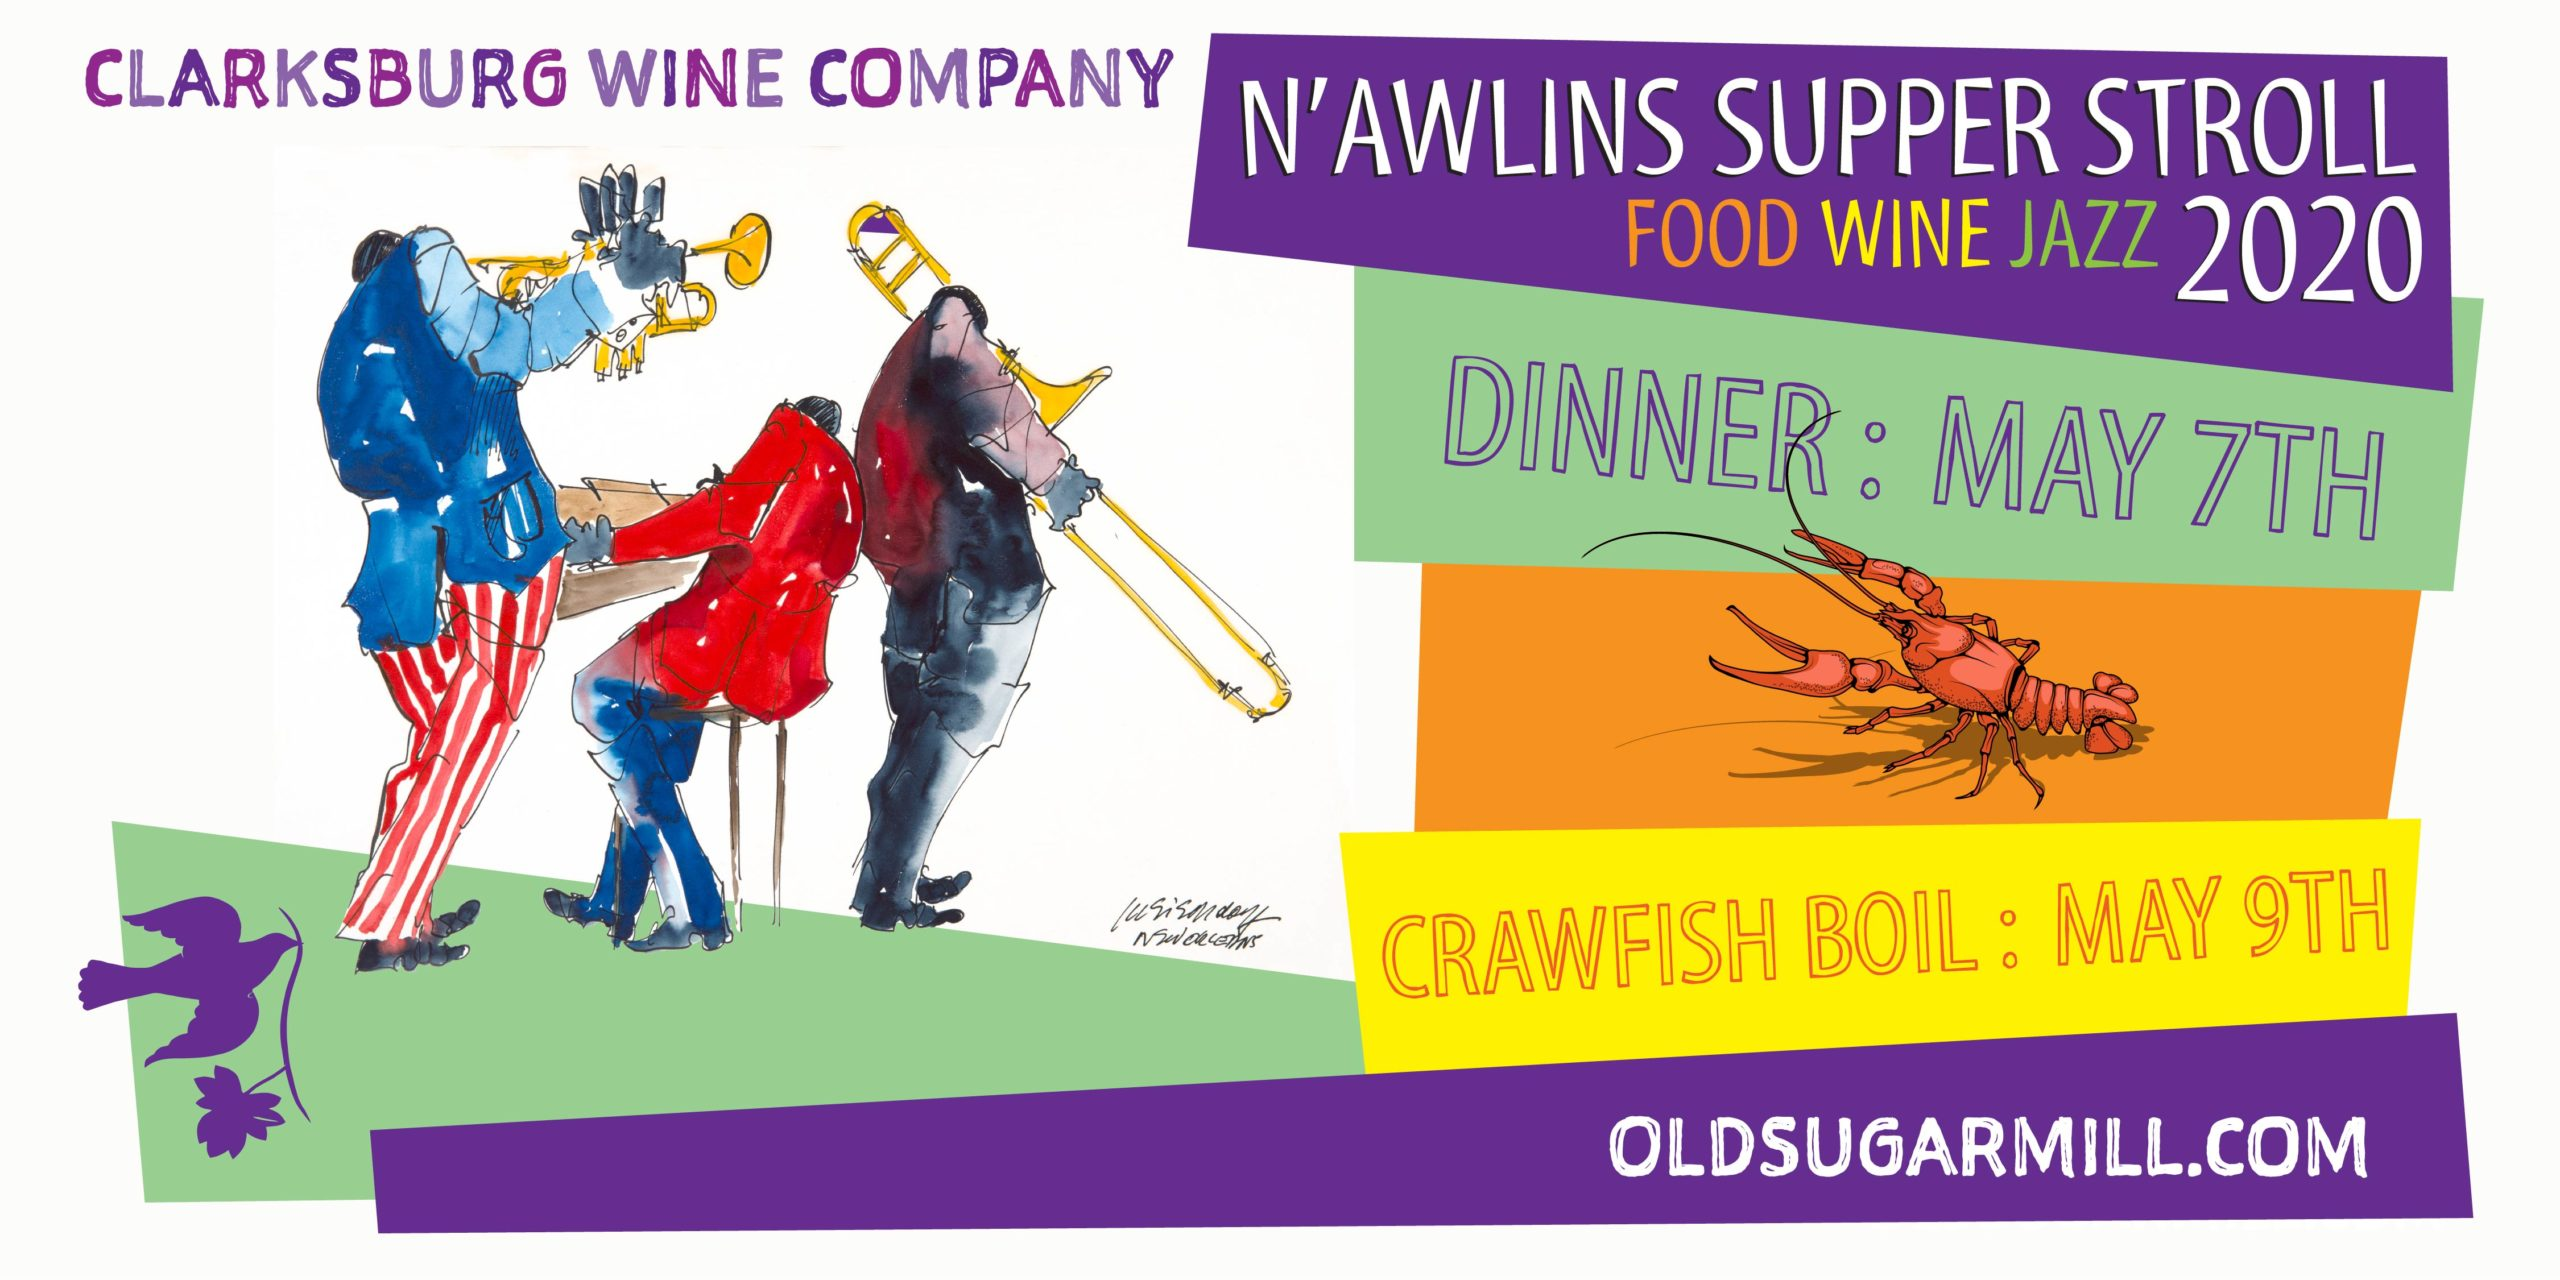 New Orleans Supper Stroll & Shrimp/Crawfish Boil - POSTPONED